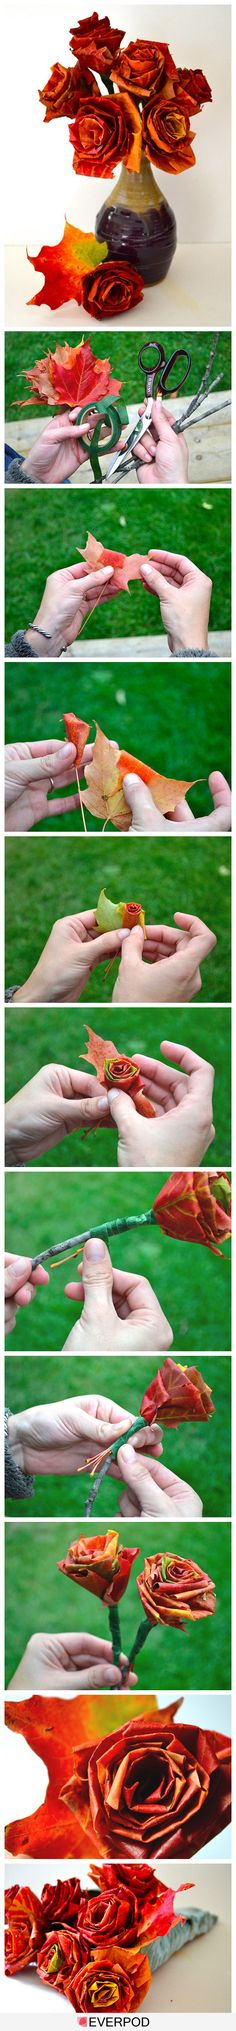 Made with fall leaves, isn't this gorgeous.  I wish I would have found it when the leaves were on the ground